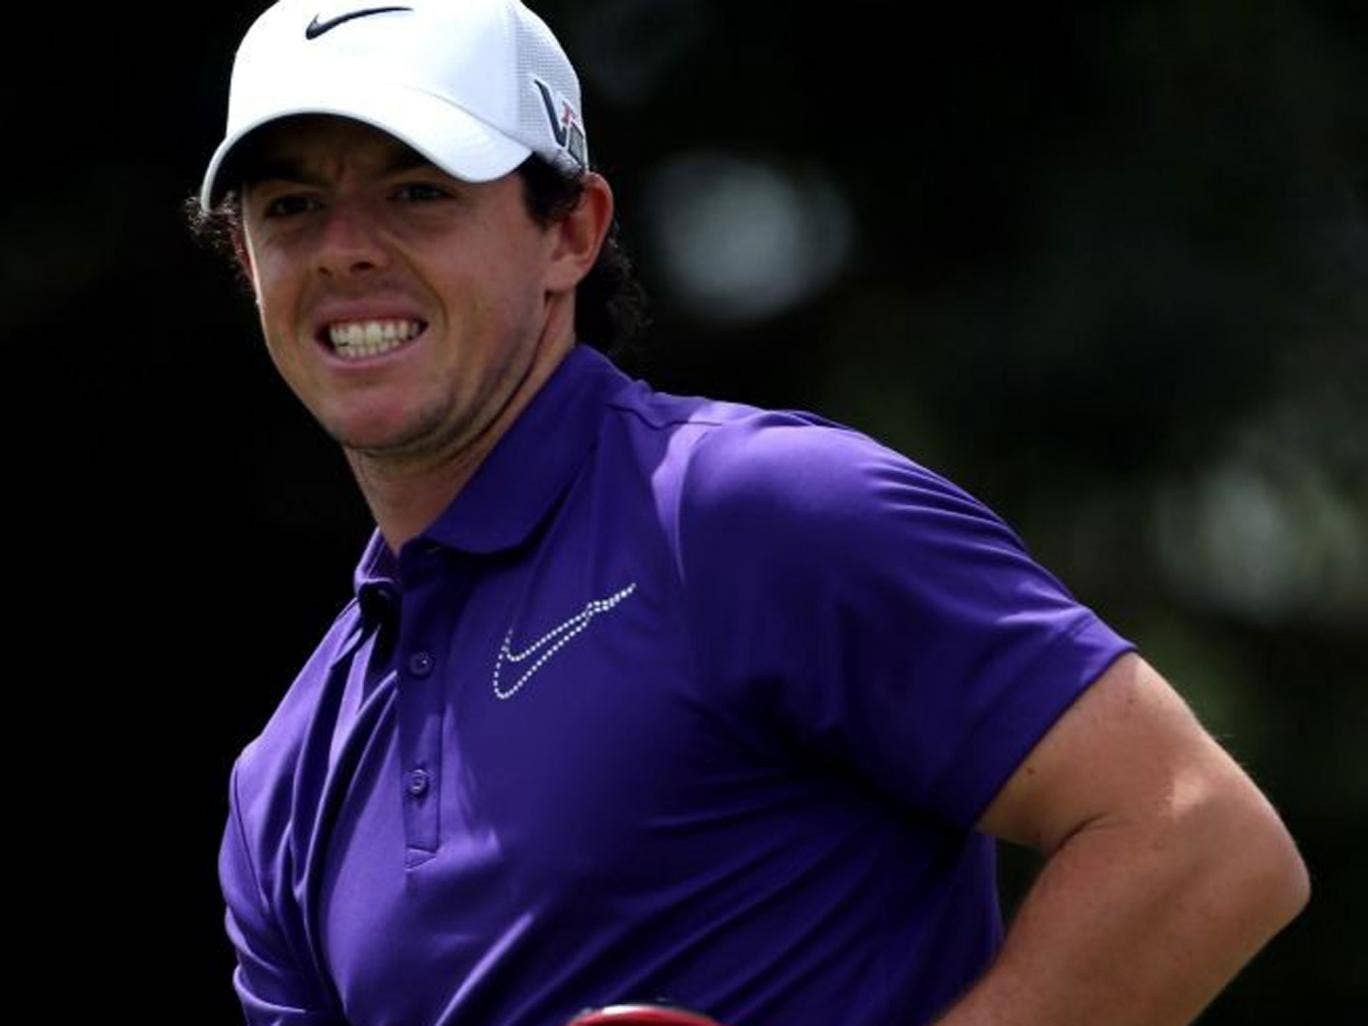 Rory McIlroy was smiling again yesterday after hitting a seven under par final round in Doral